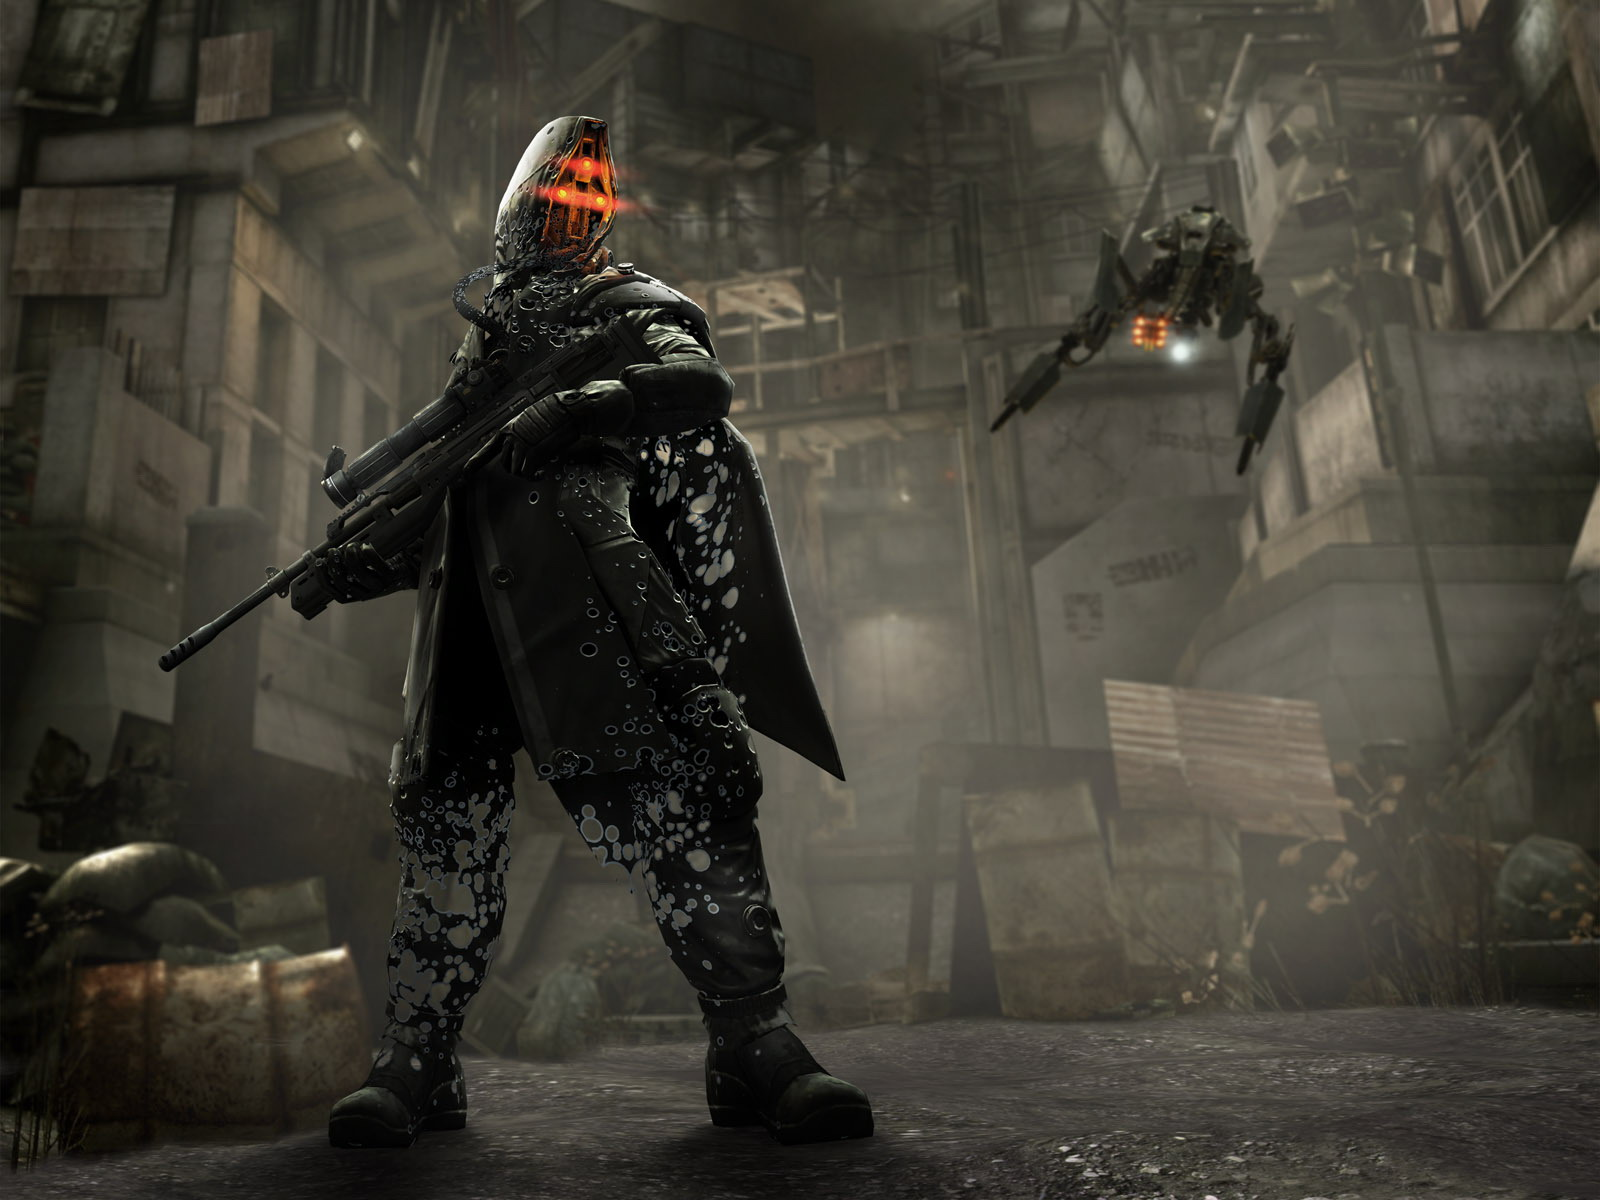 Picture-Halo-Reach-Helghast-Sniper-High-Definition-Widescreen-Wallpaper.jpg